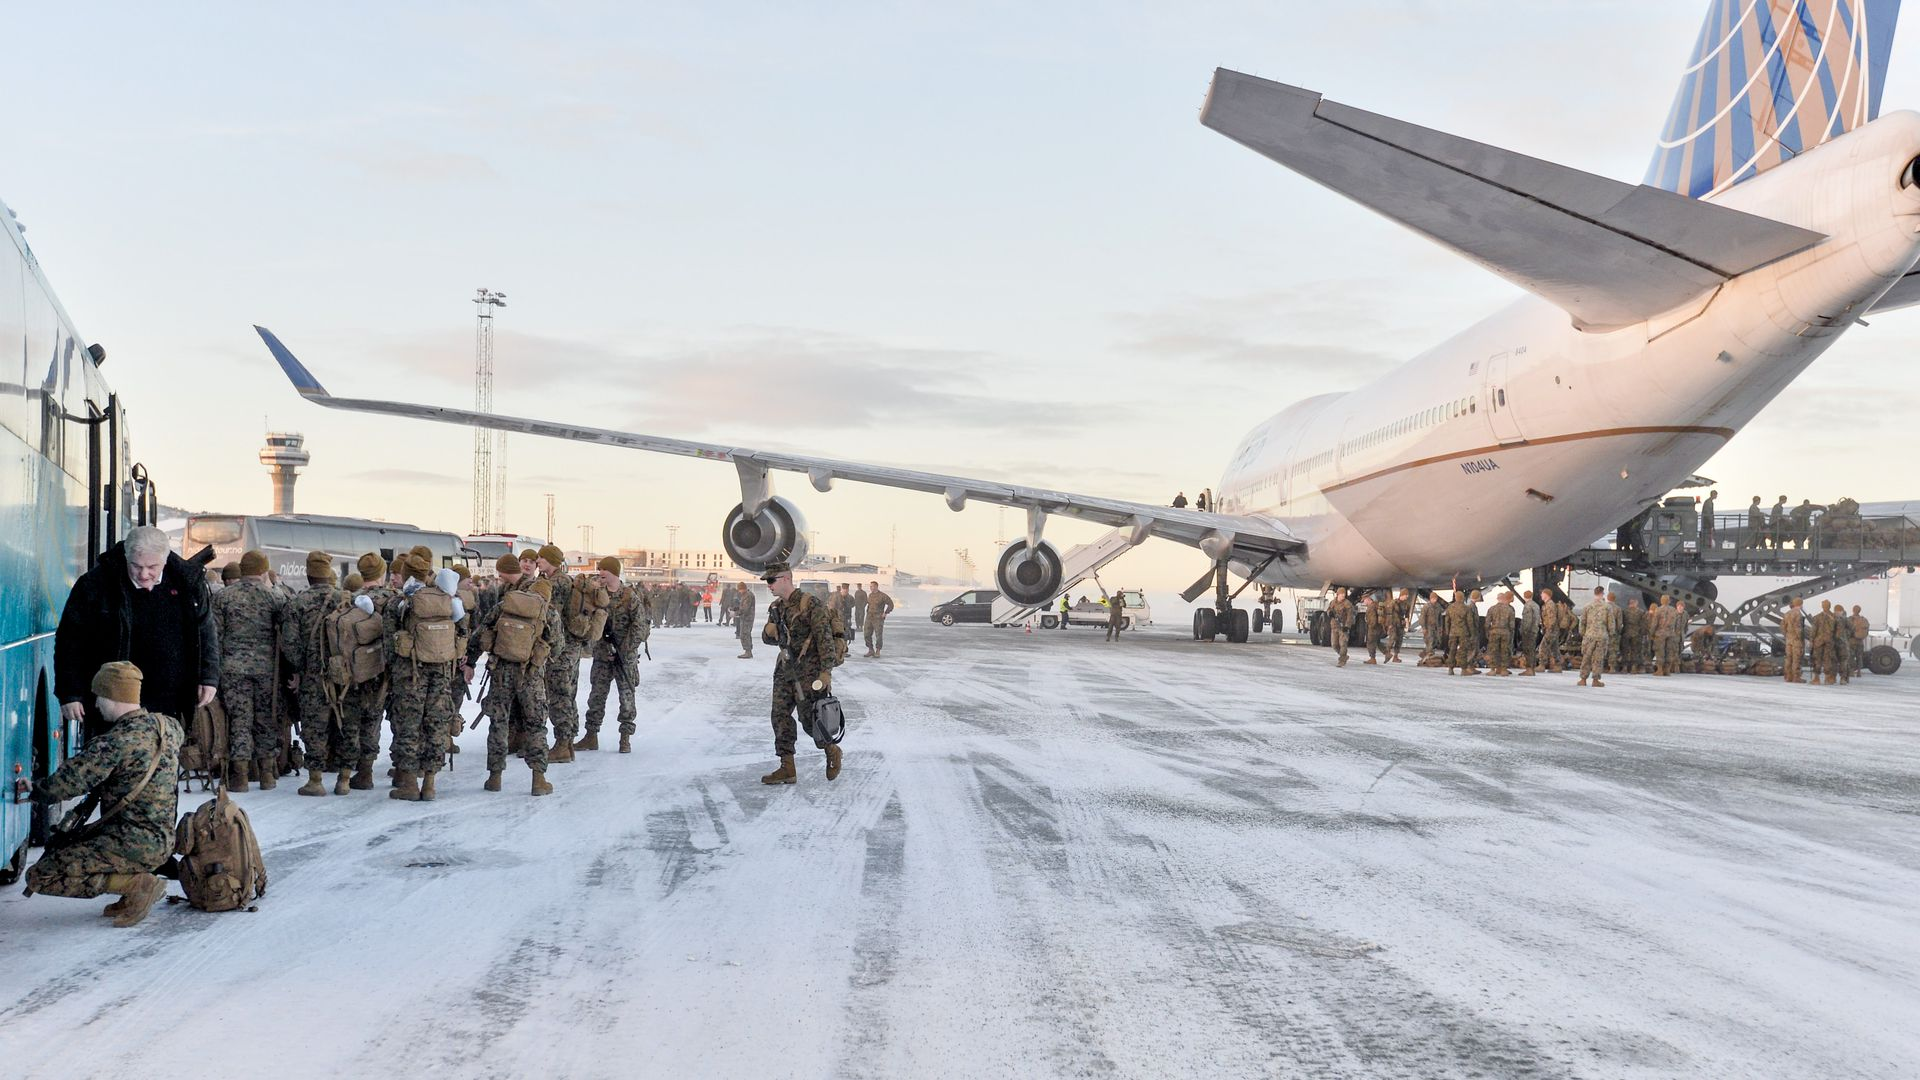 U.S. Marines disembark fro a plane onto a snowy tarmac.